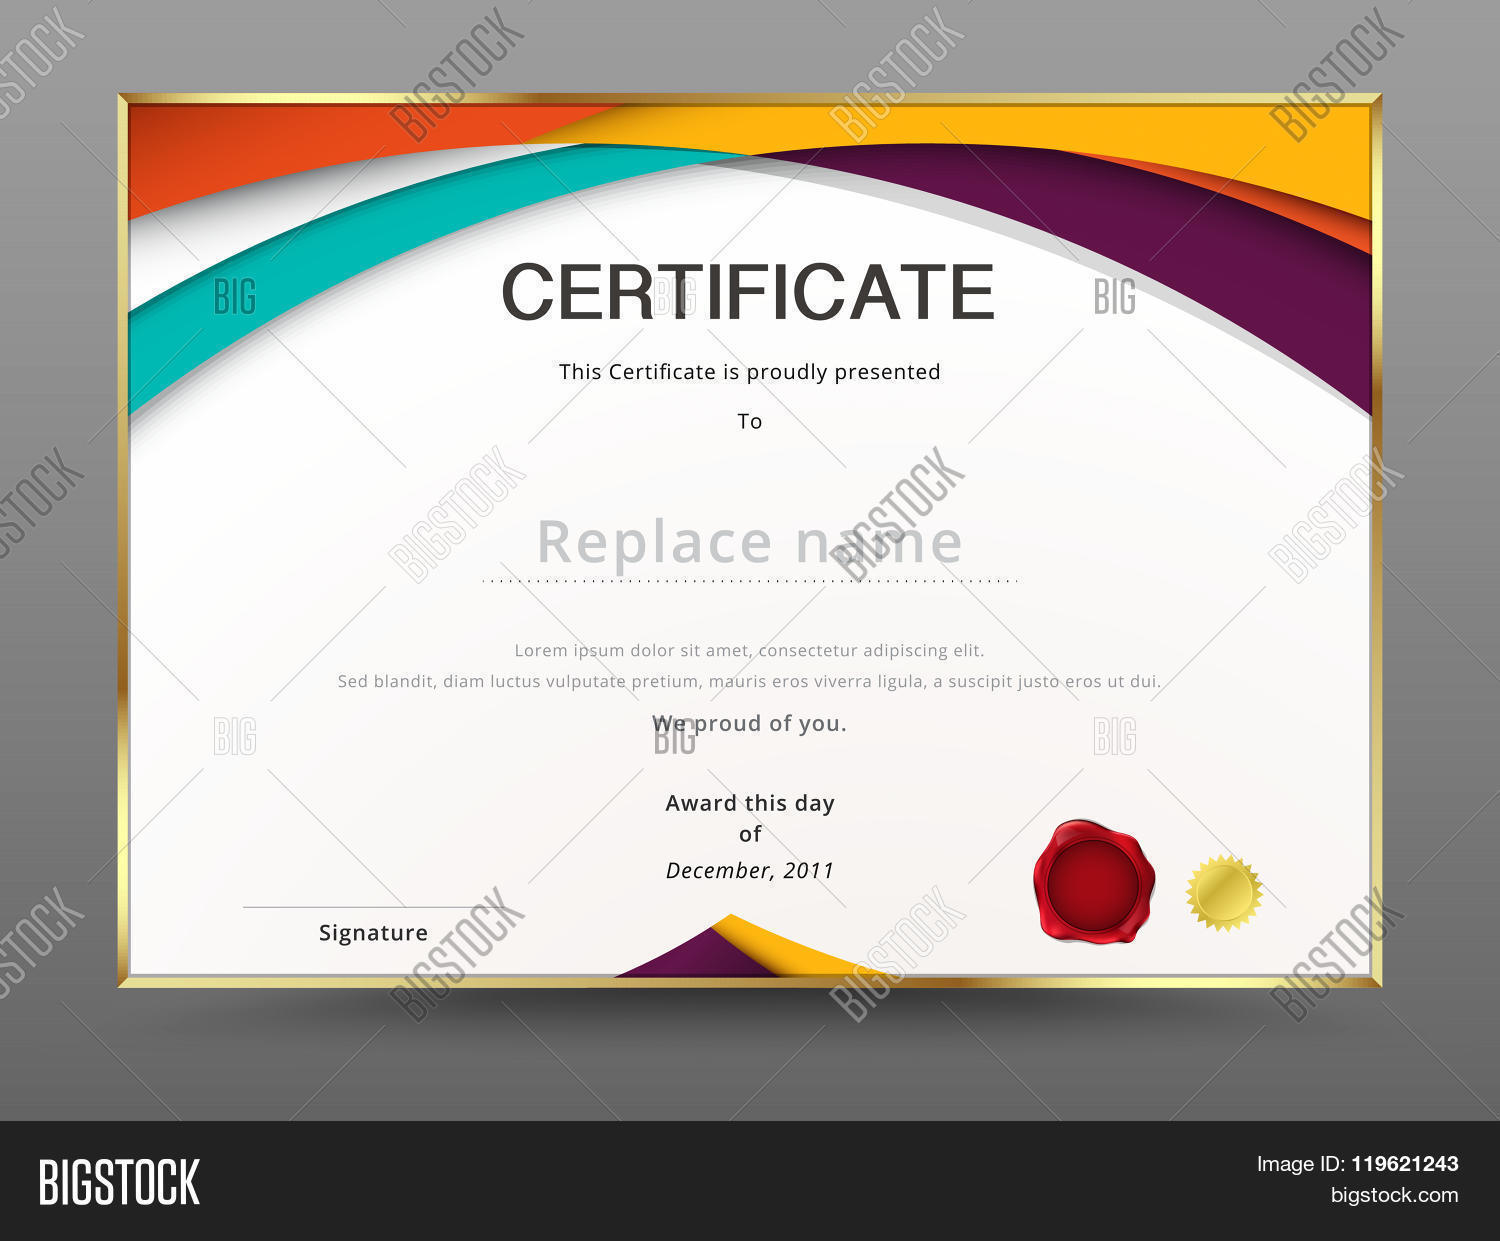 Abstract certificate template vector photo bigstock abstract certificate template diploma design vector stock 1betcityfo Image collections